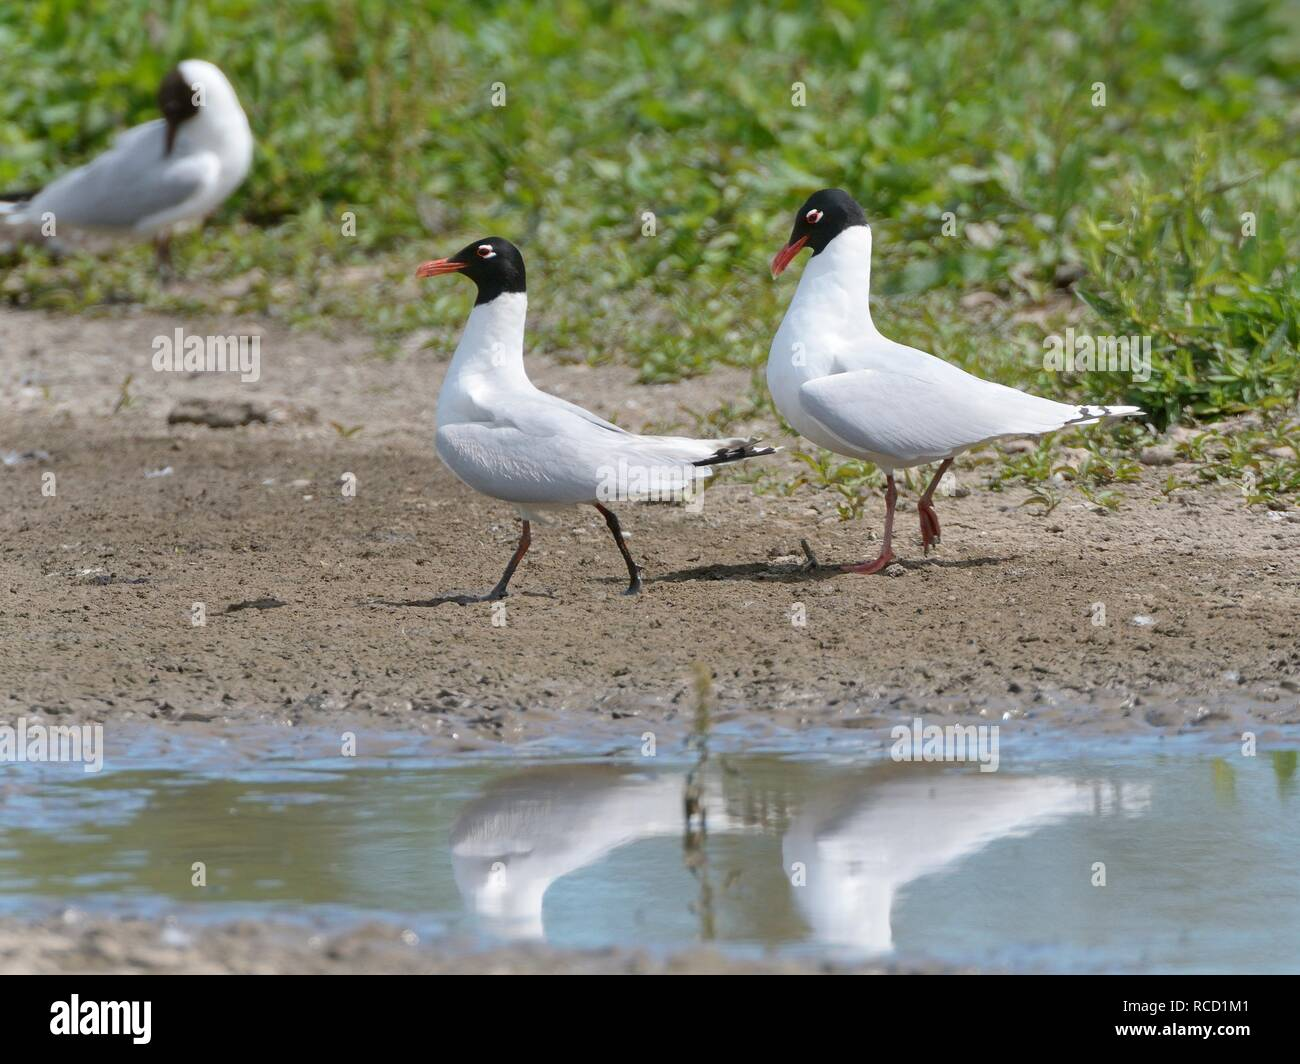 Mediterranean gull (Larus melanocephalus) pair courting on a lake shore, walking in unison and head-bowing, Gloucestershire, UK, June - Stock Image